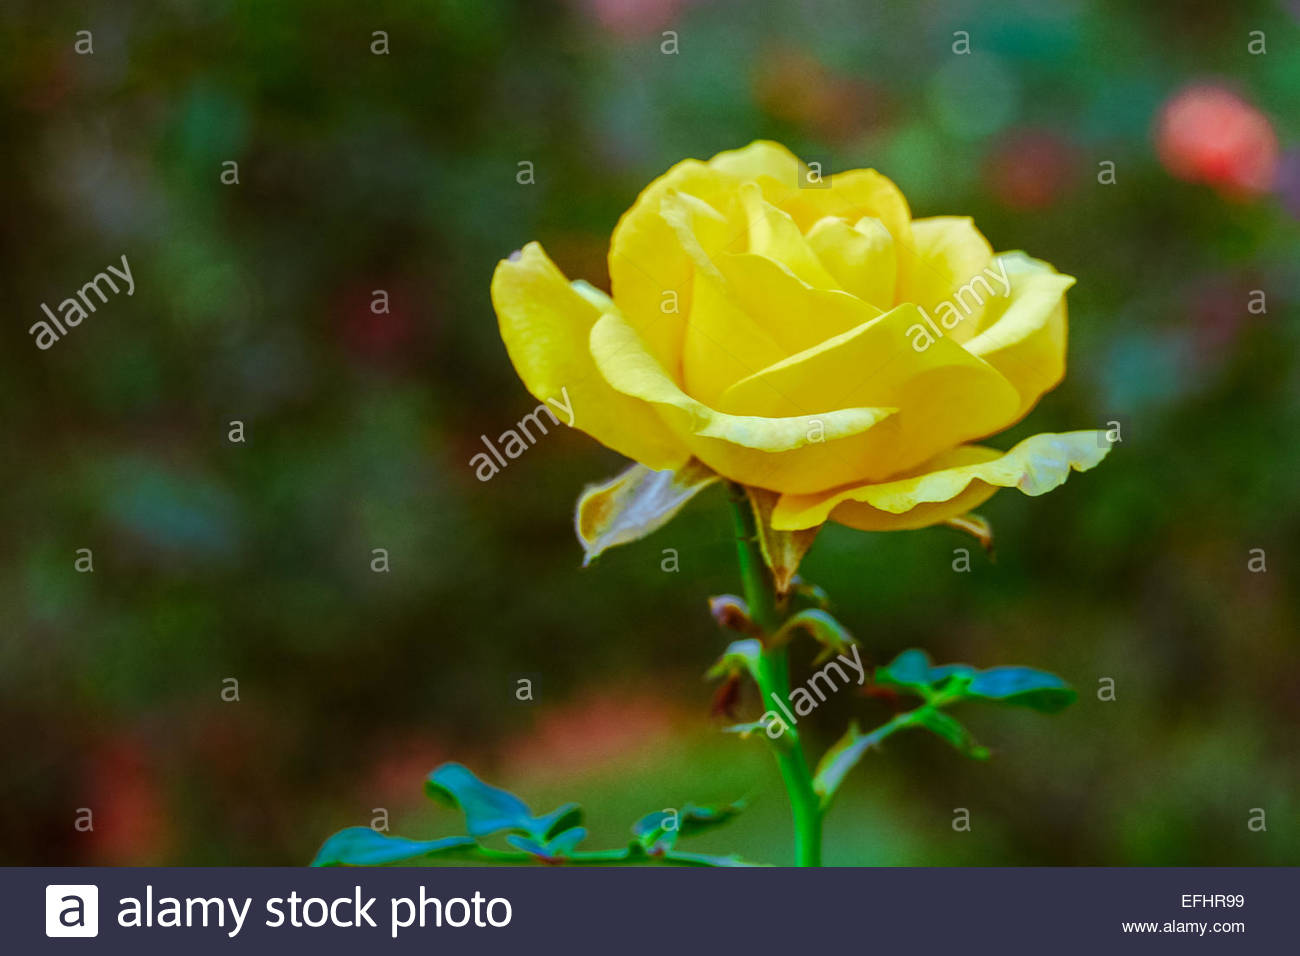 Yellow color rose flower in green background stock photo 78452789 yellow color rose flower in green background mightylinksfo